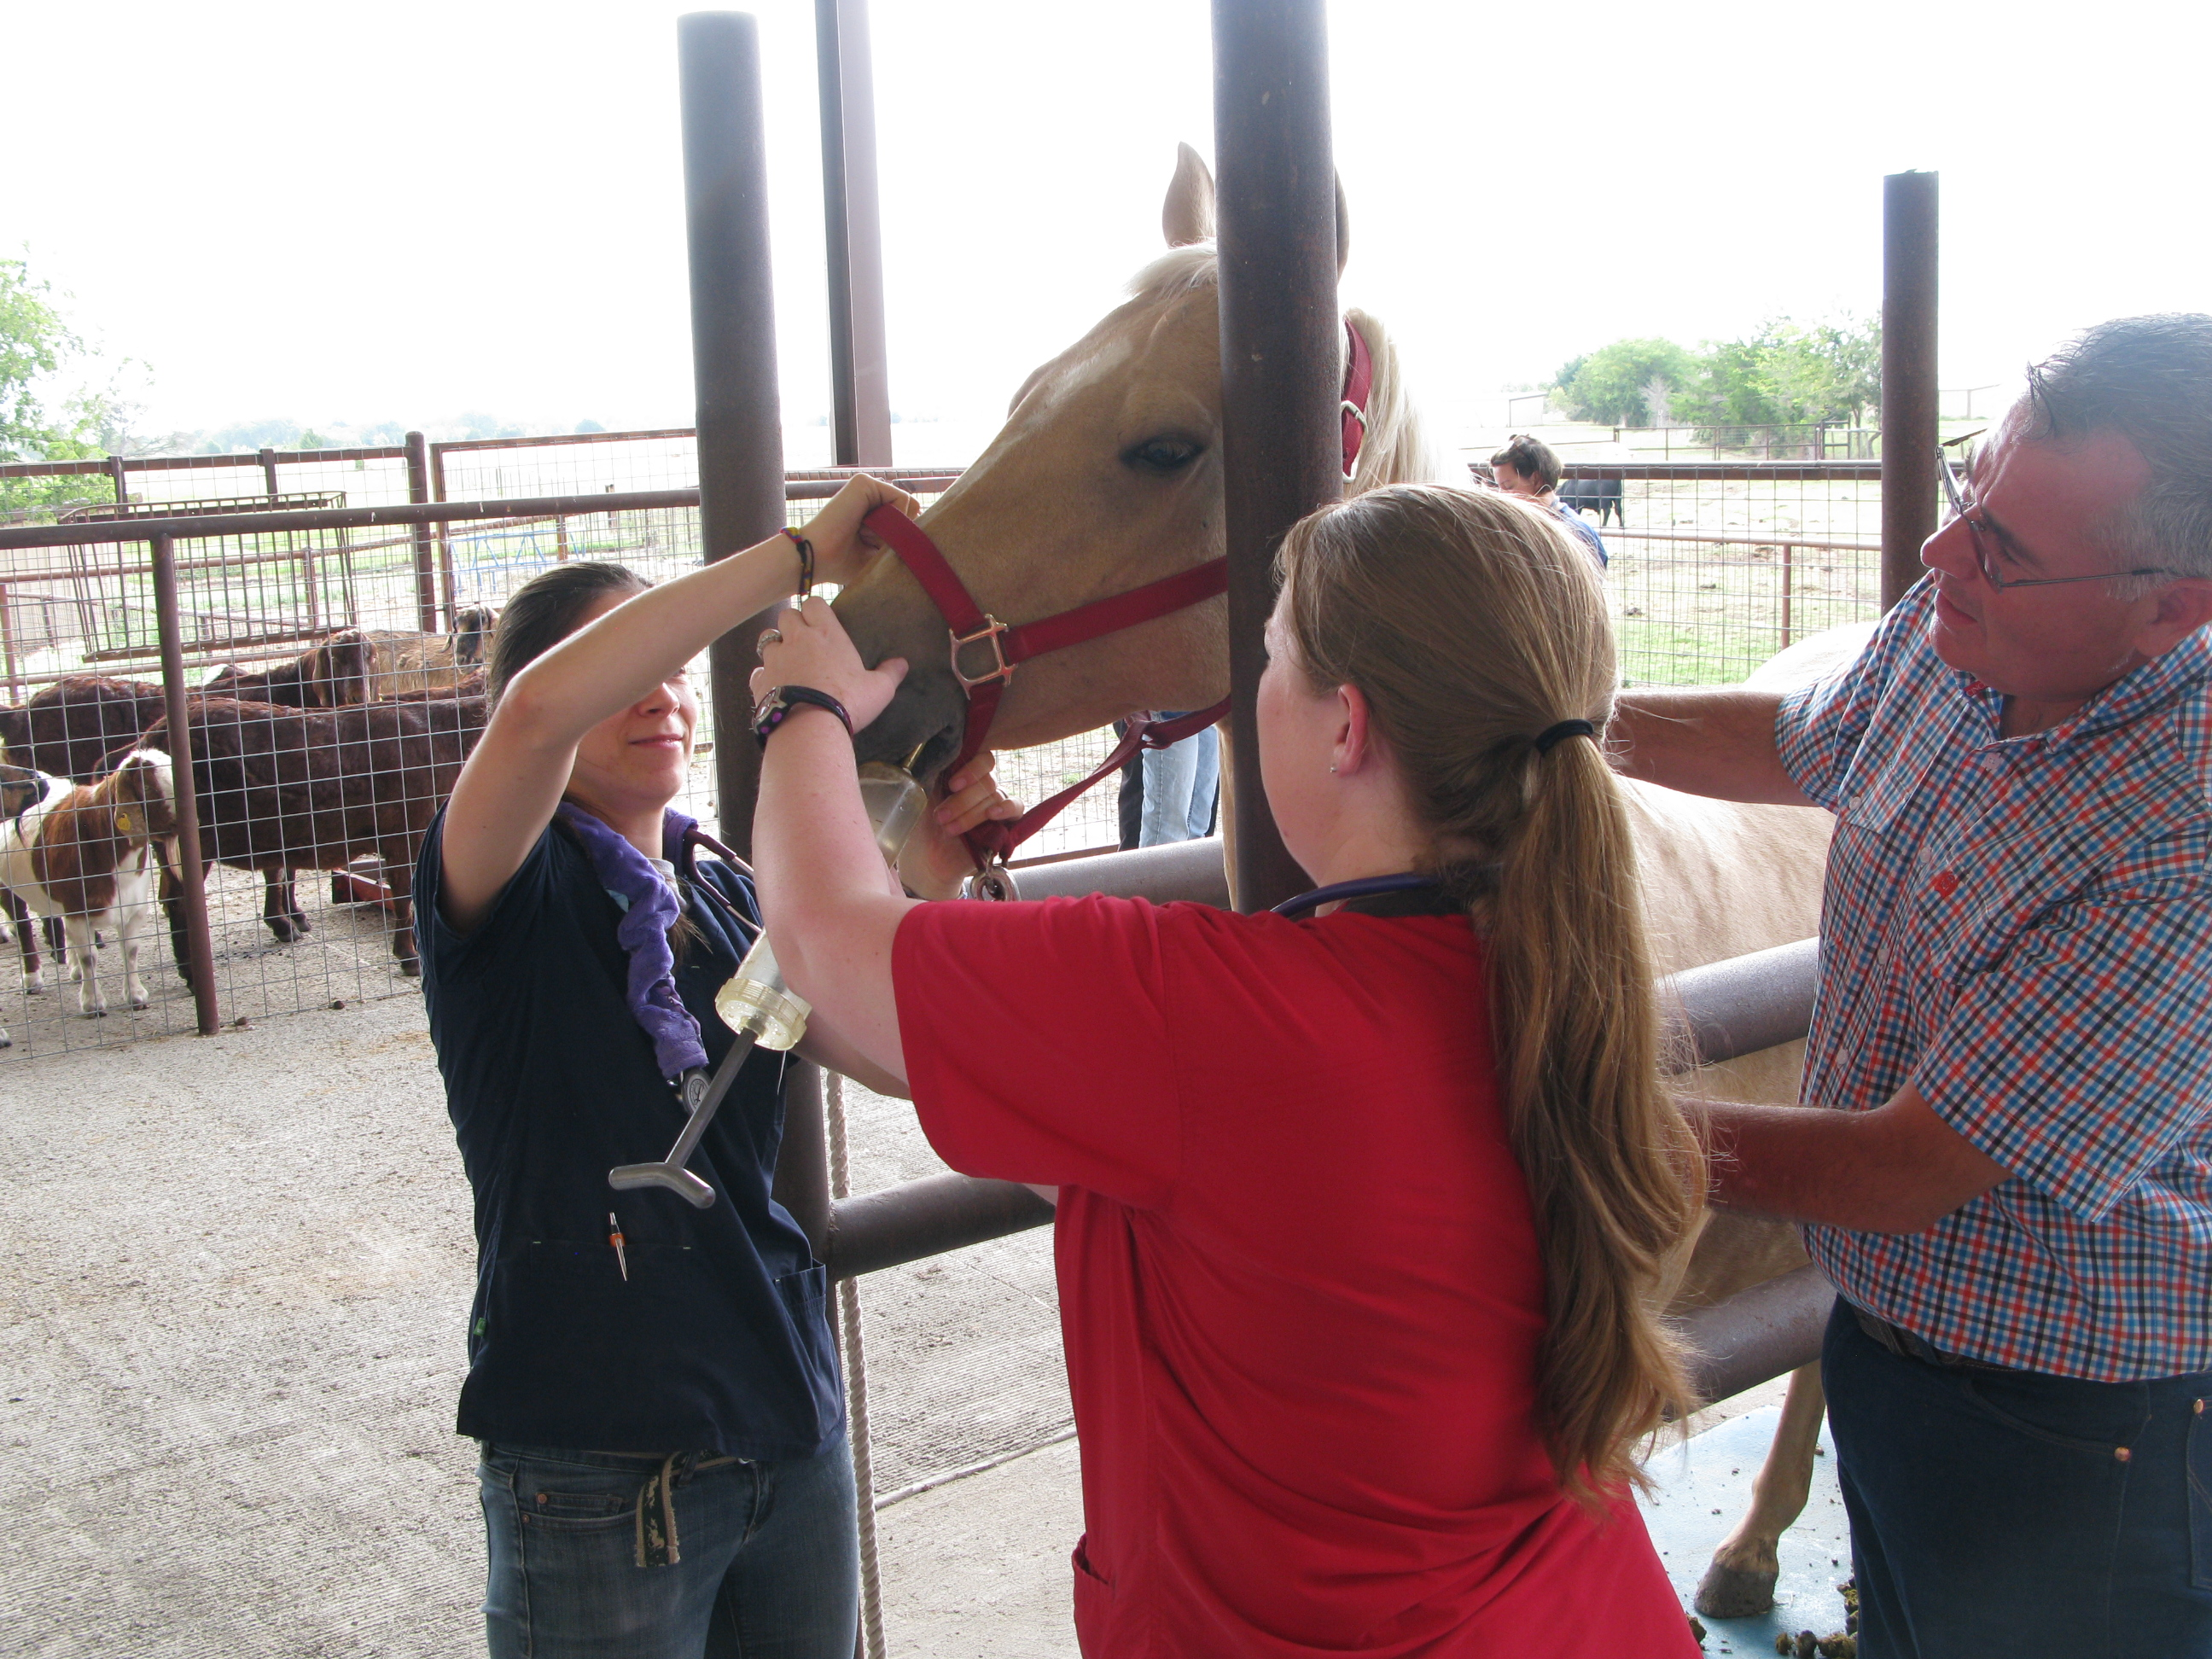 Horse and feeding tube - large animal lab